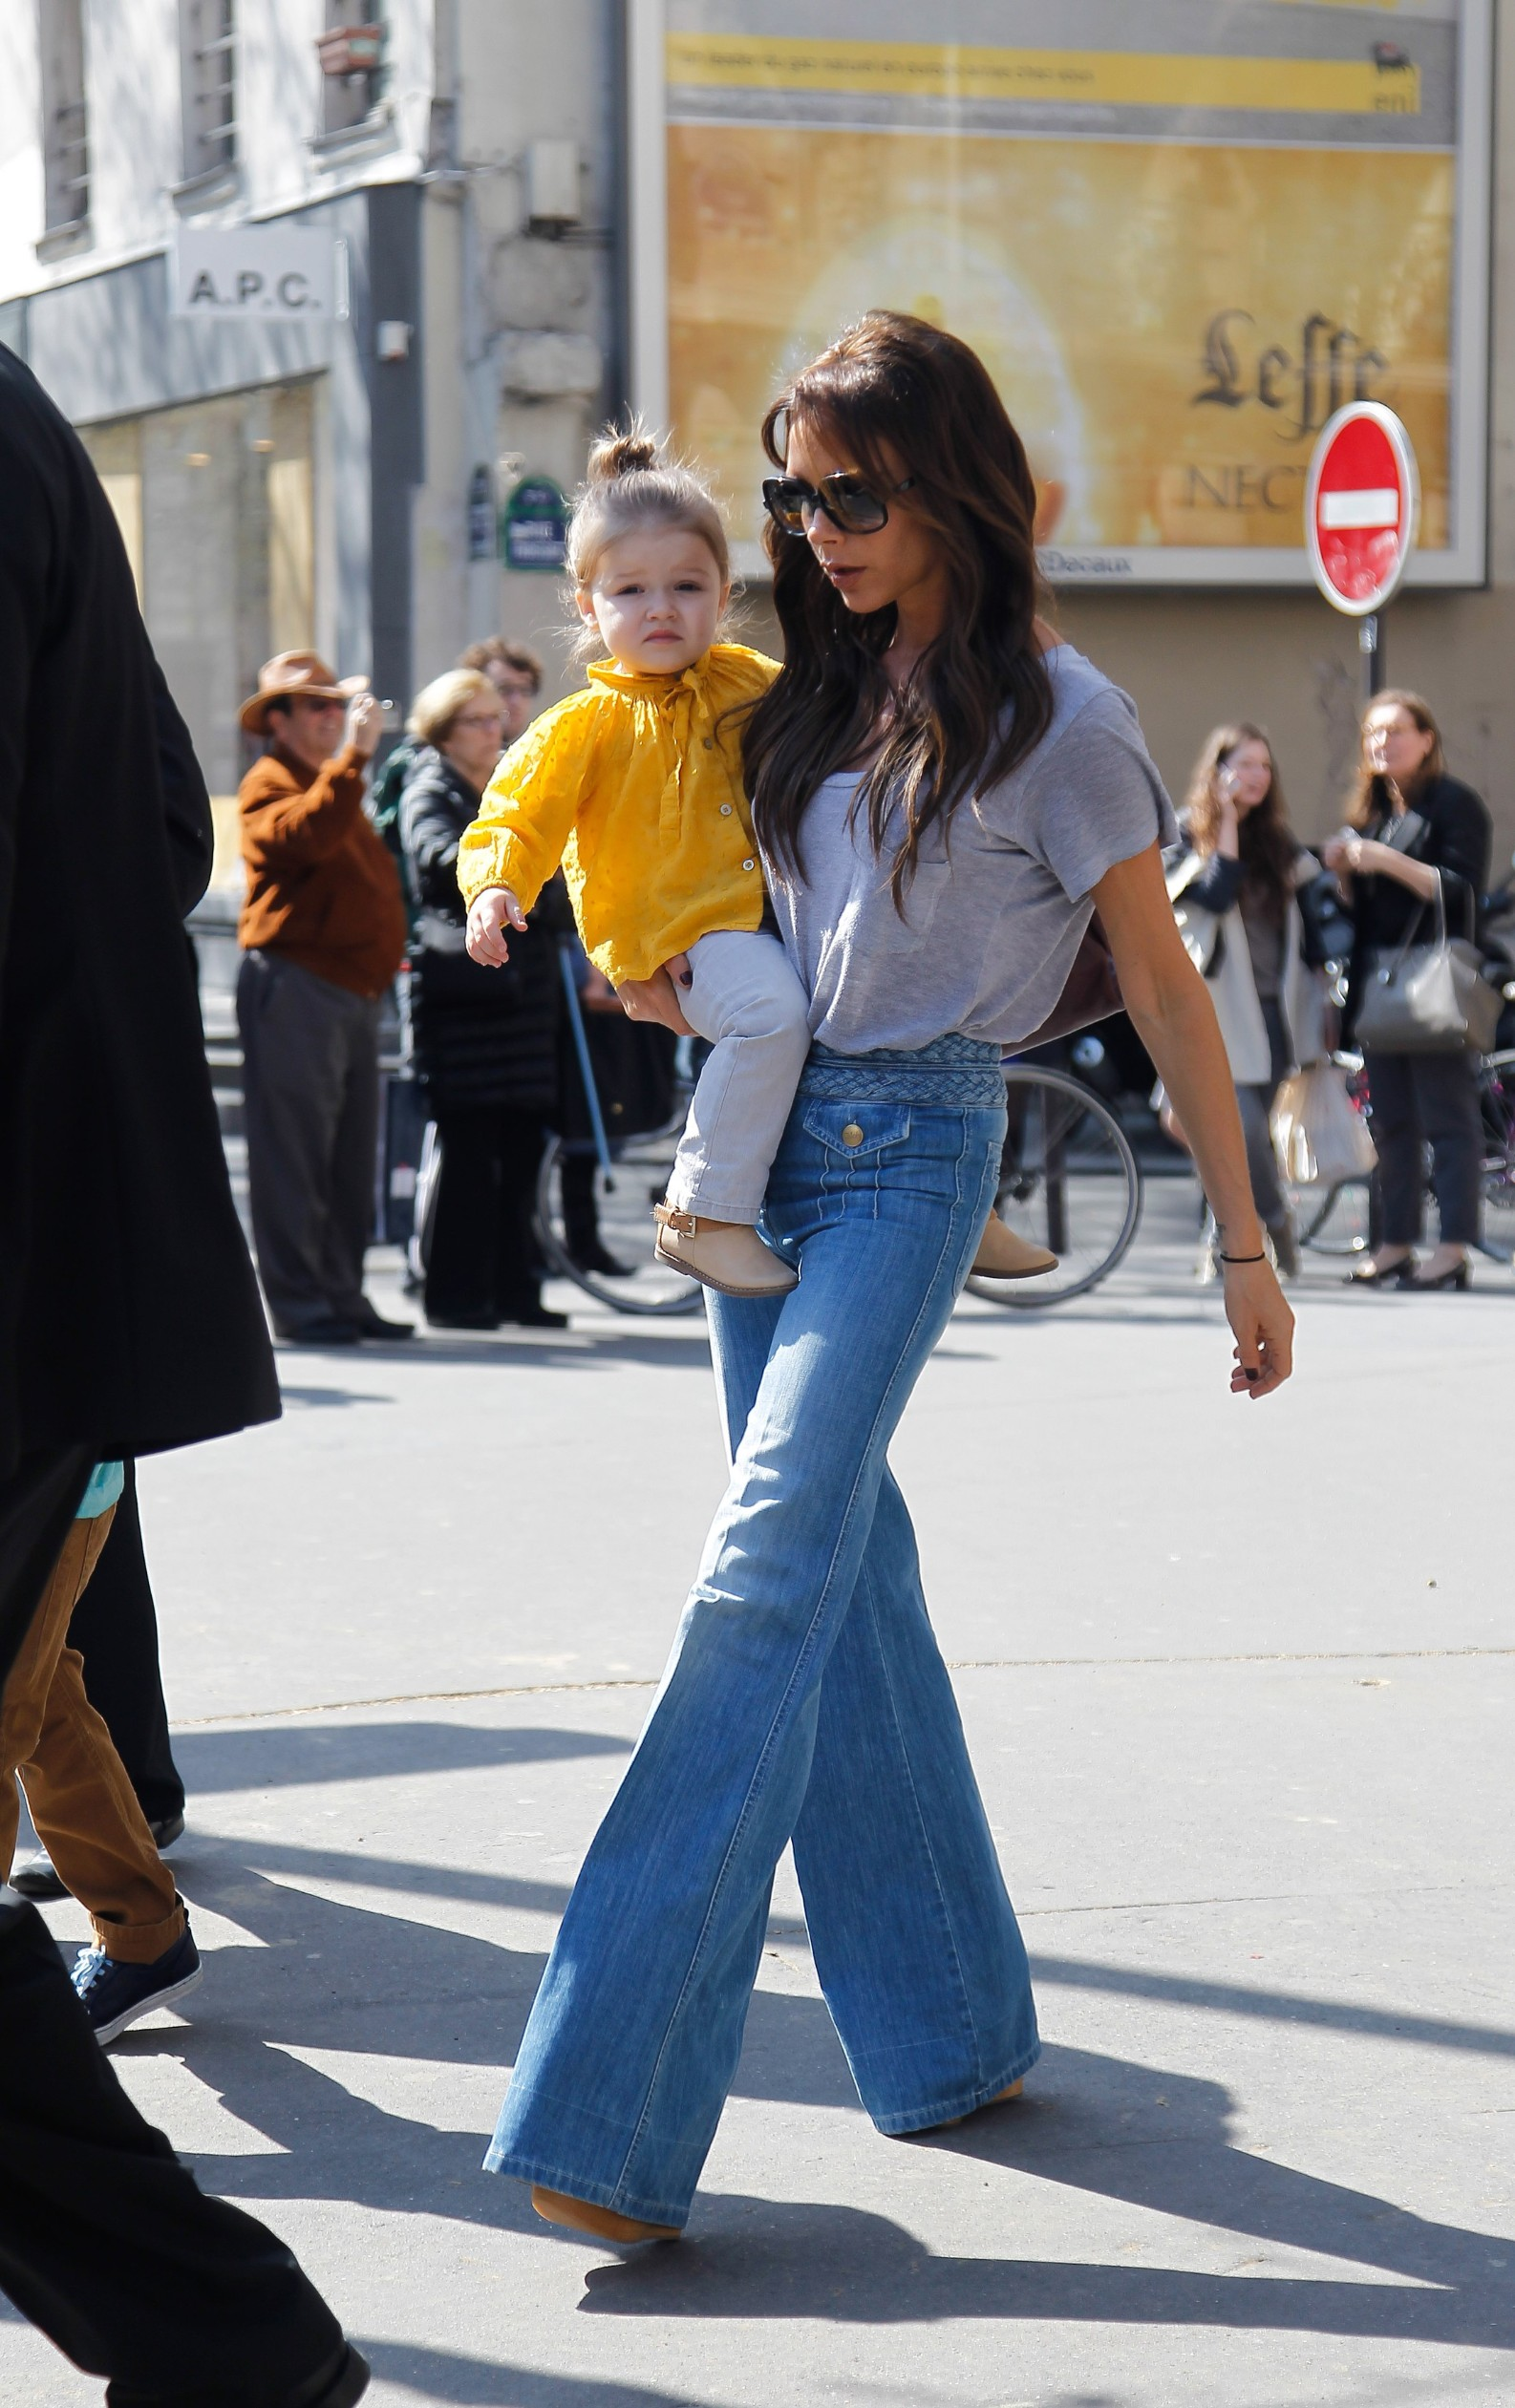 Victoria Beckham and family did some shopping at BonTon's store in Paris.  20/04/2013. Paris, France., Image: 159090970, License: Rights-managed, Restrictions: , Model Release: no, Credit line: FKF+LSN / KCS Presse / Profimedia